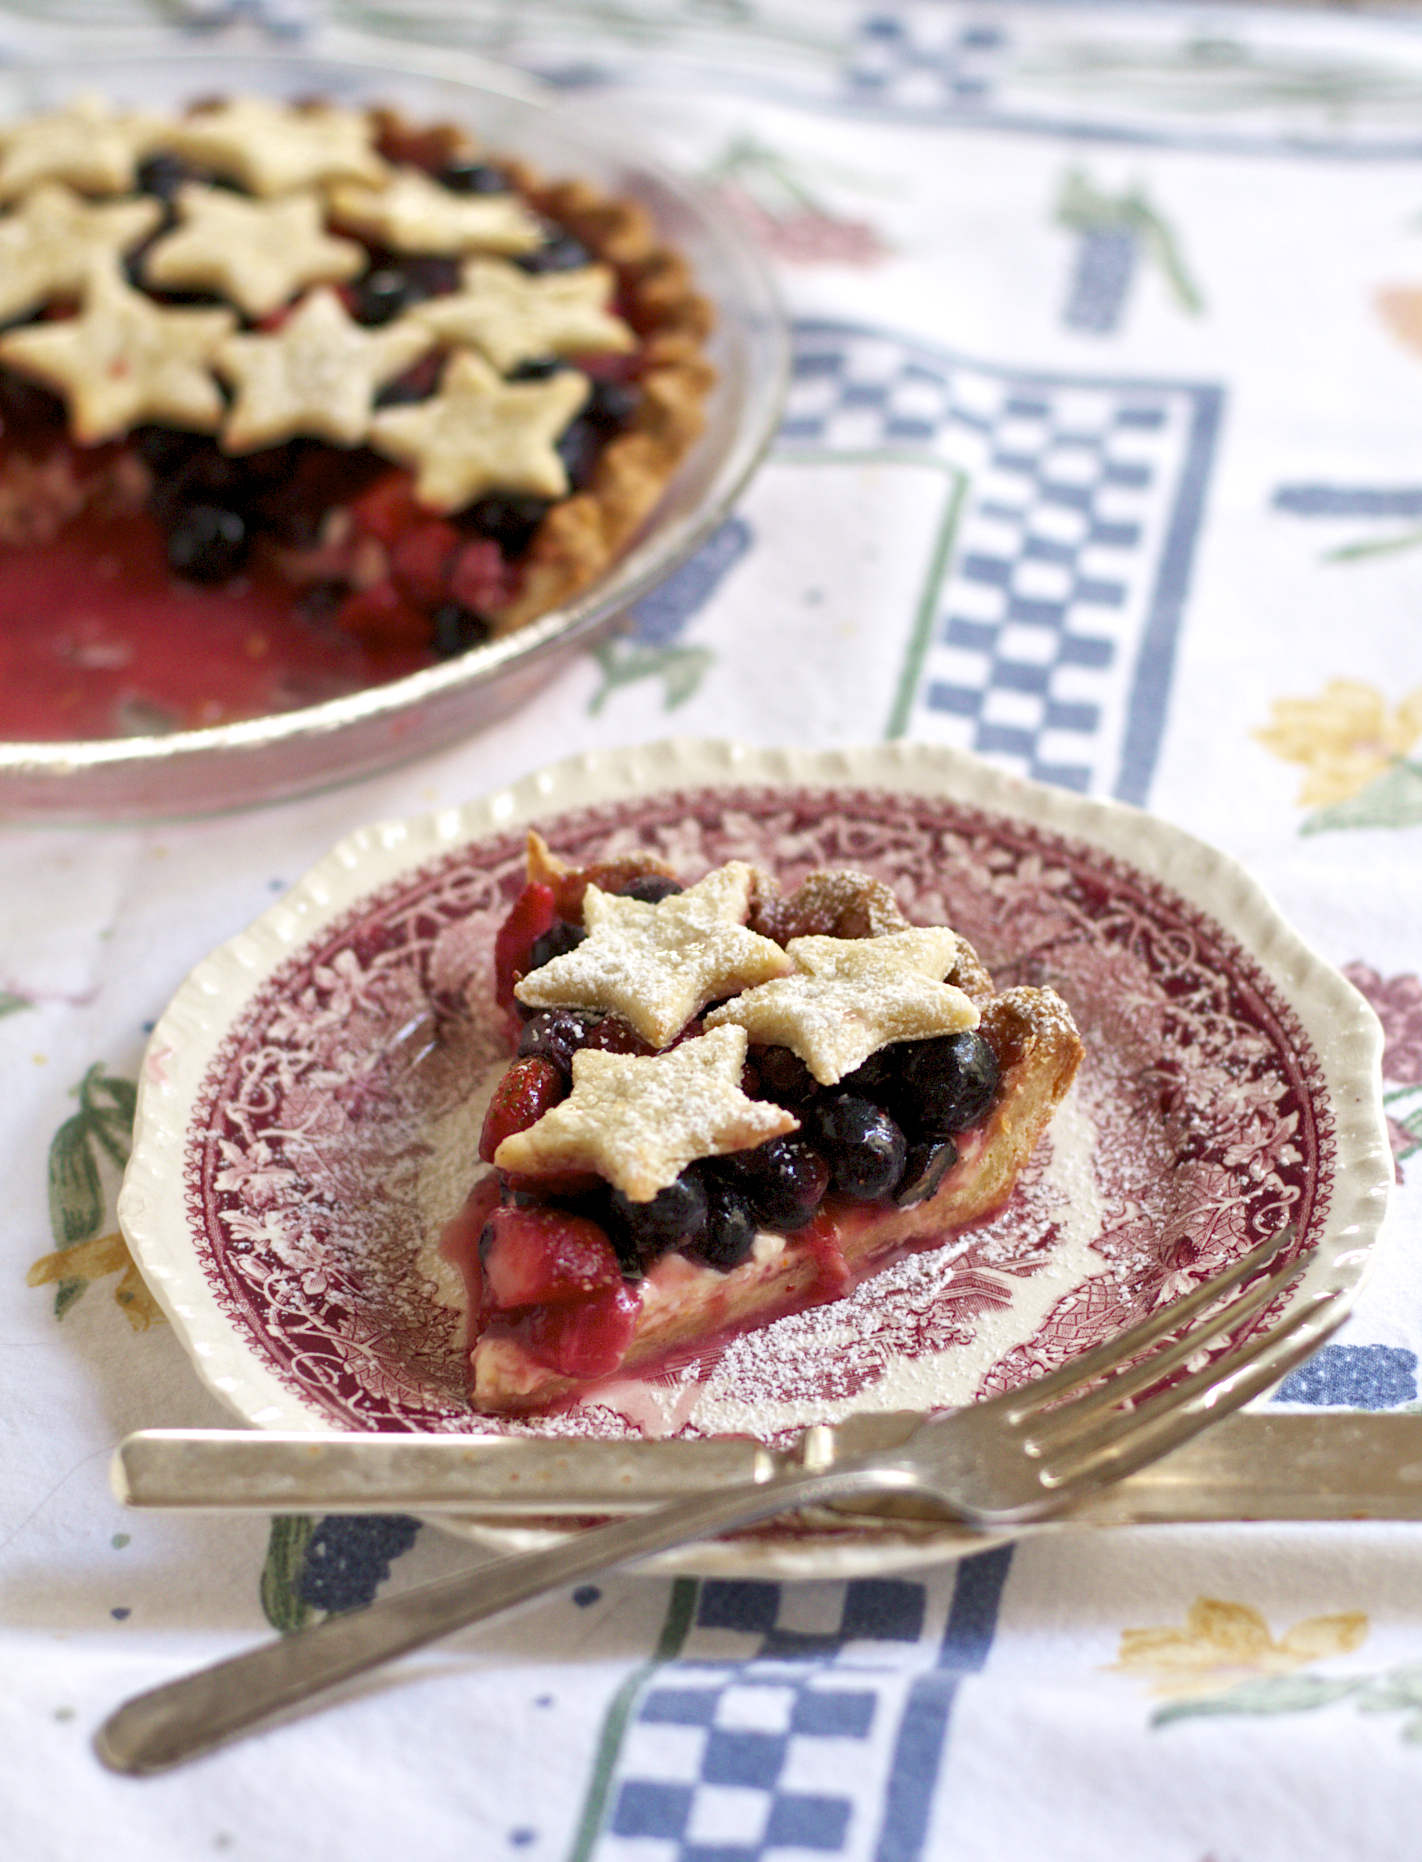 Strawberry and Blueberry Cream Cheese Pie - Sass & Veracity